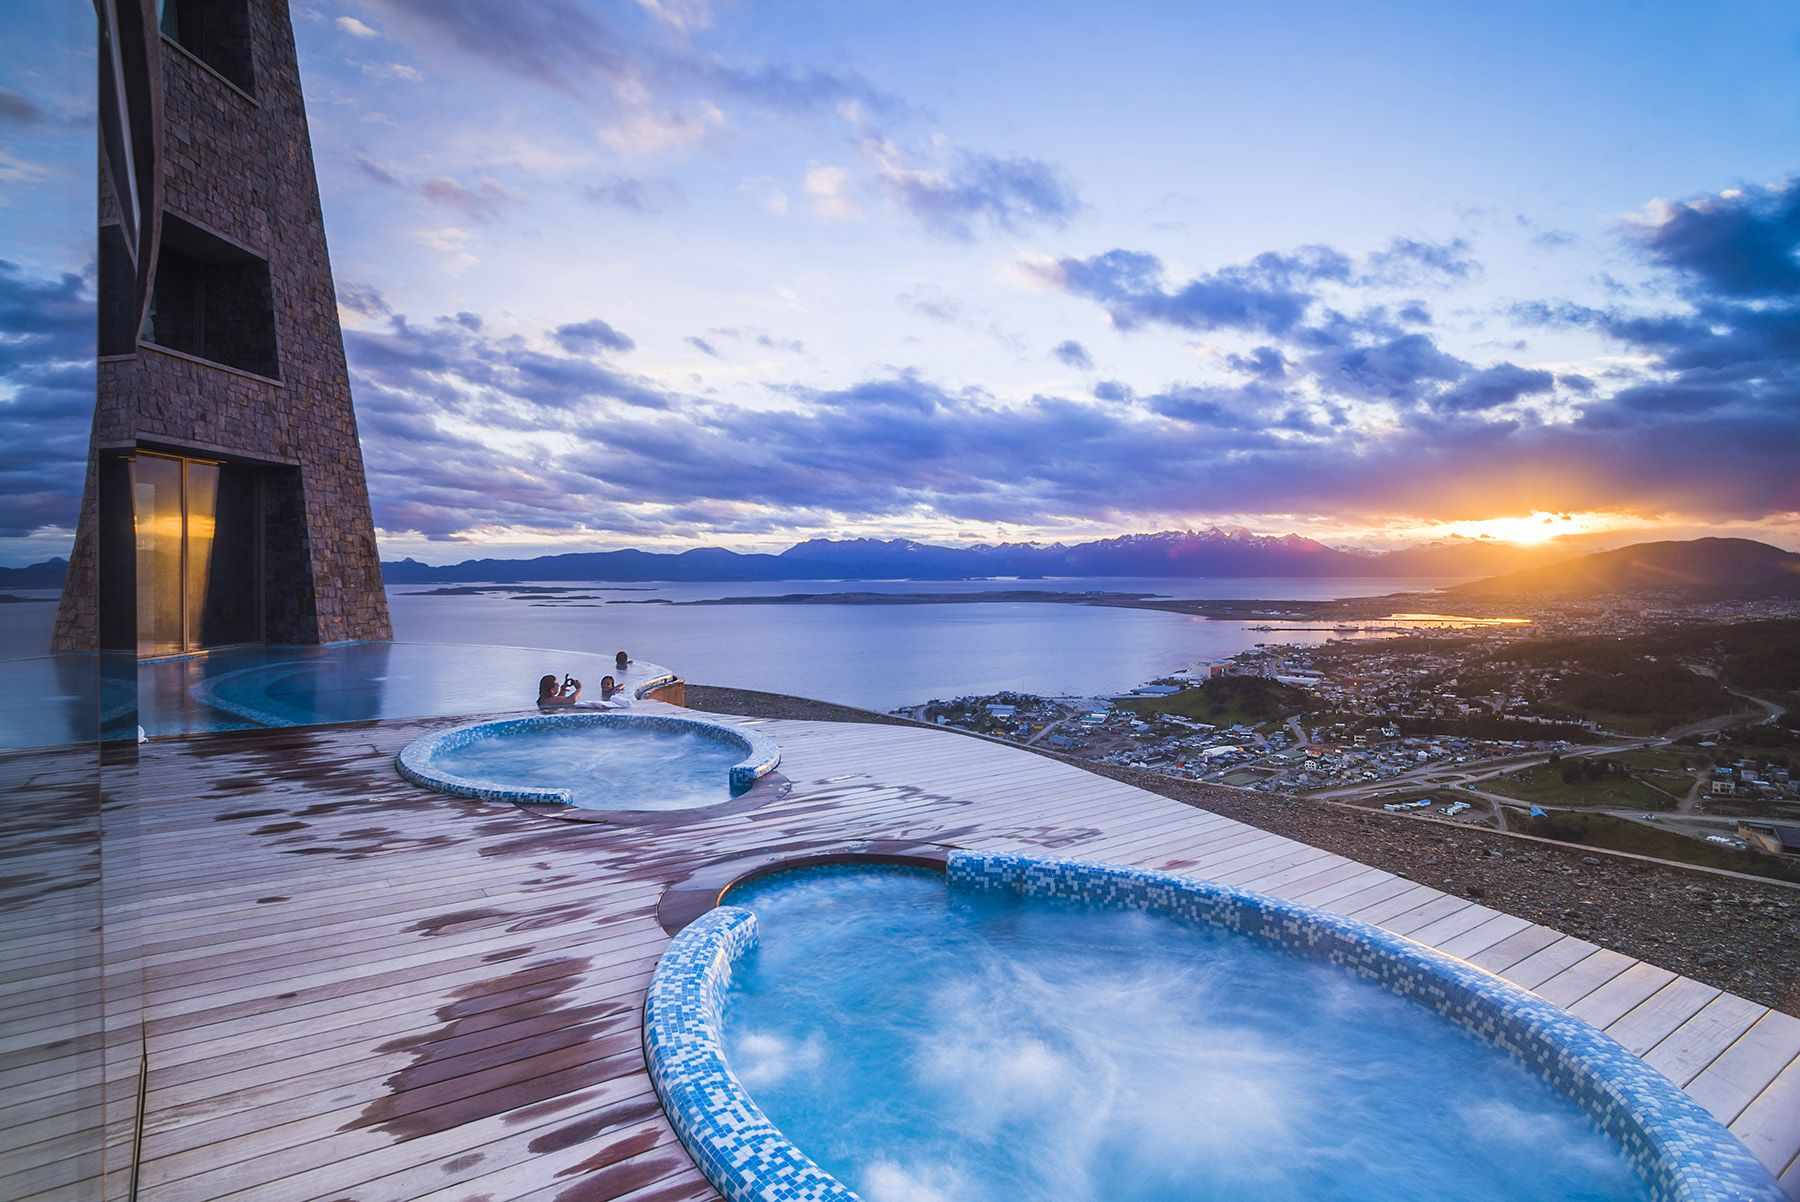 Outdoor swimming pool and jacuzzi at sunset, Hotel Arakur